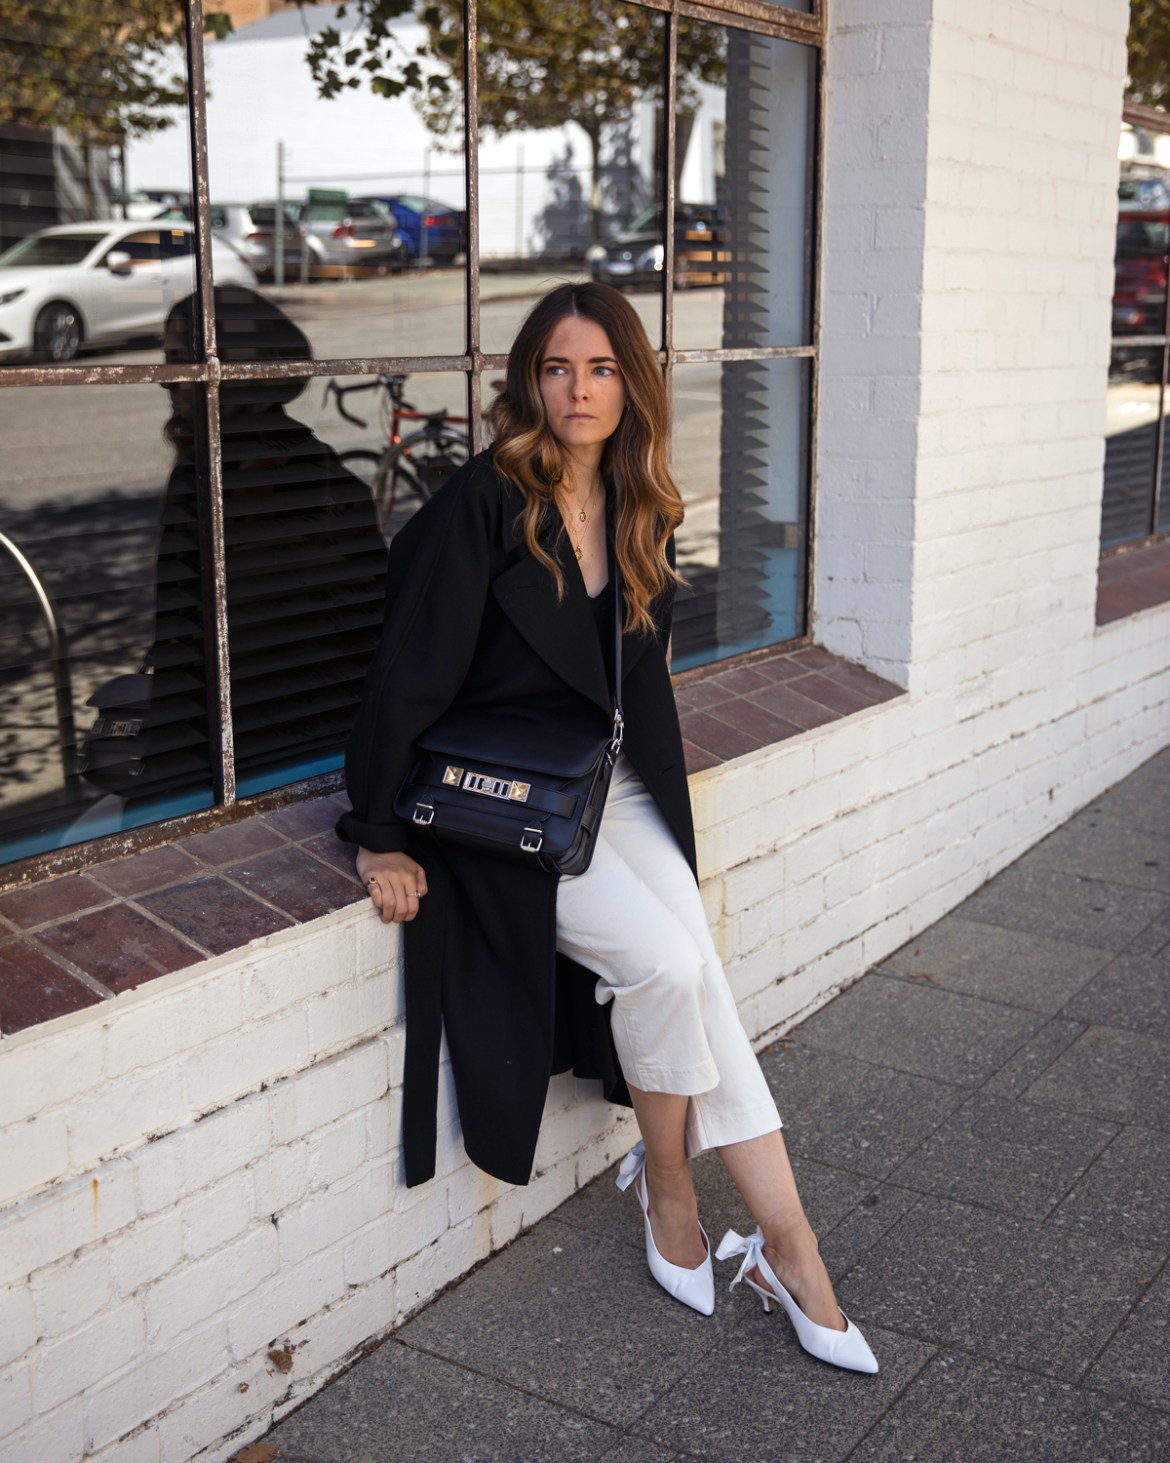 Uniqlo U black coat, Boden silk camisole, cropped jeans, Proenza Schouler PS11 bag and Ganni bow heels outfit worn by Inspiring Wit fashion blogger Jenelle